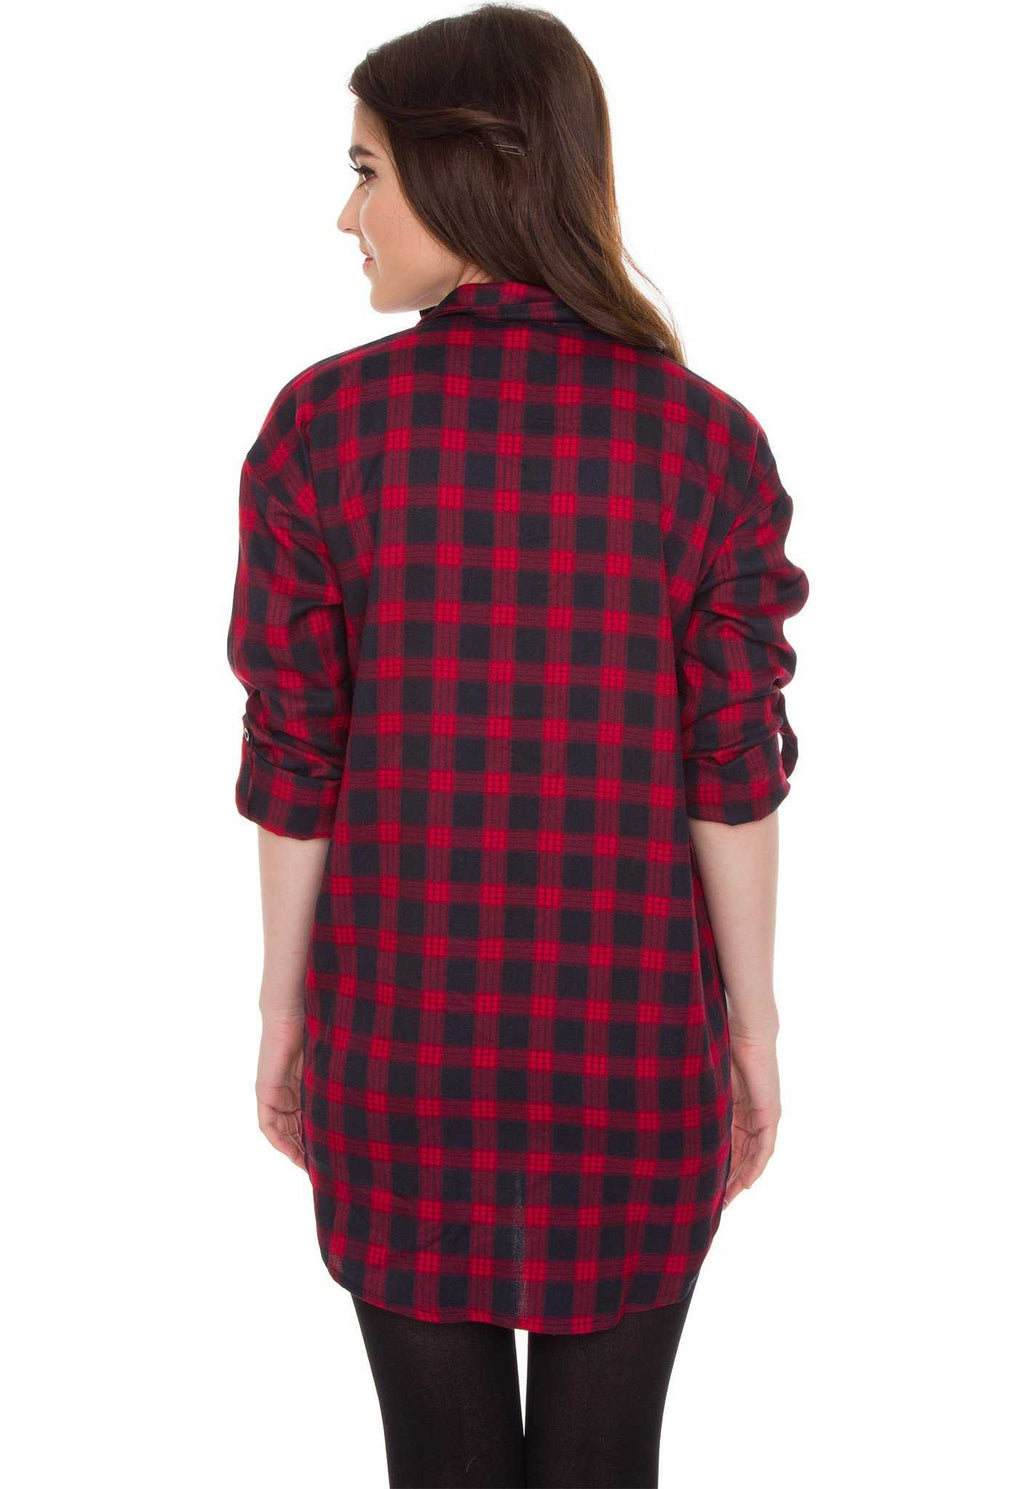 Dresses - Greer Plaid Tunic